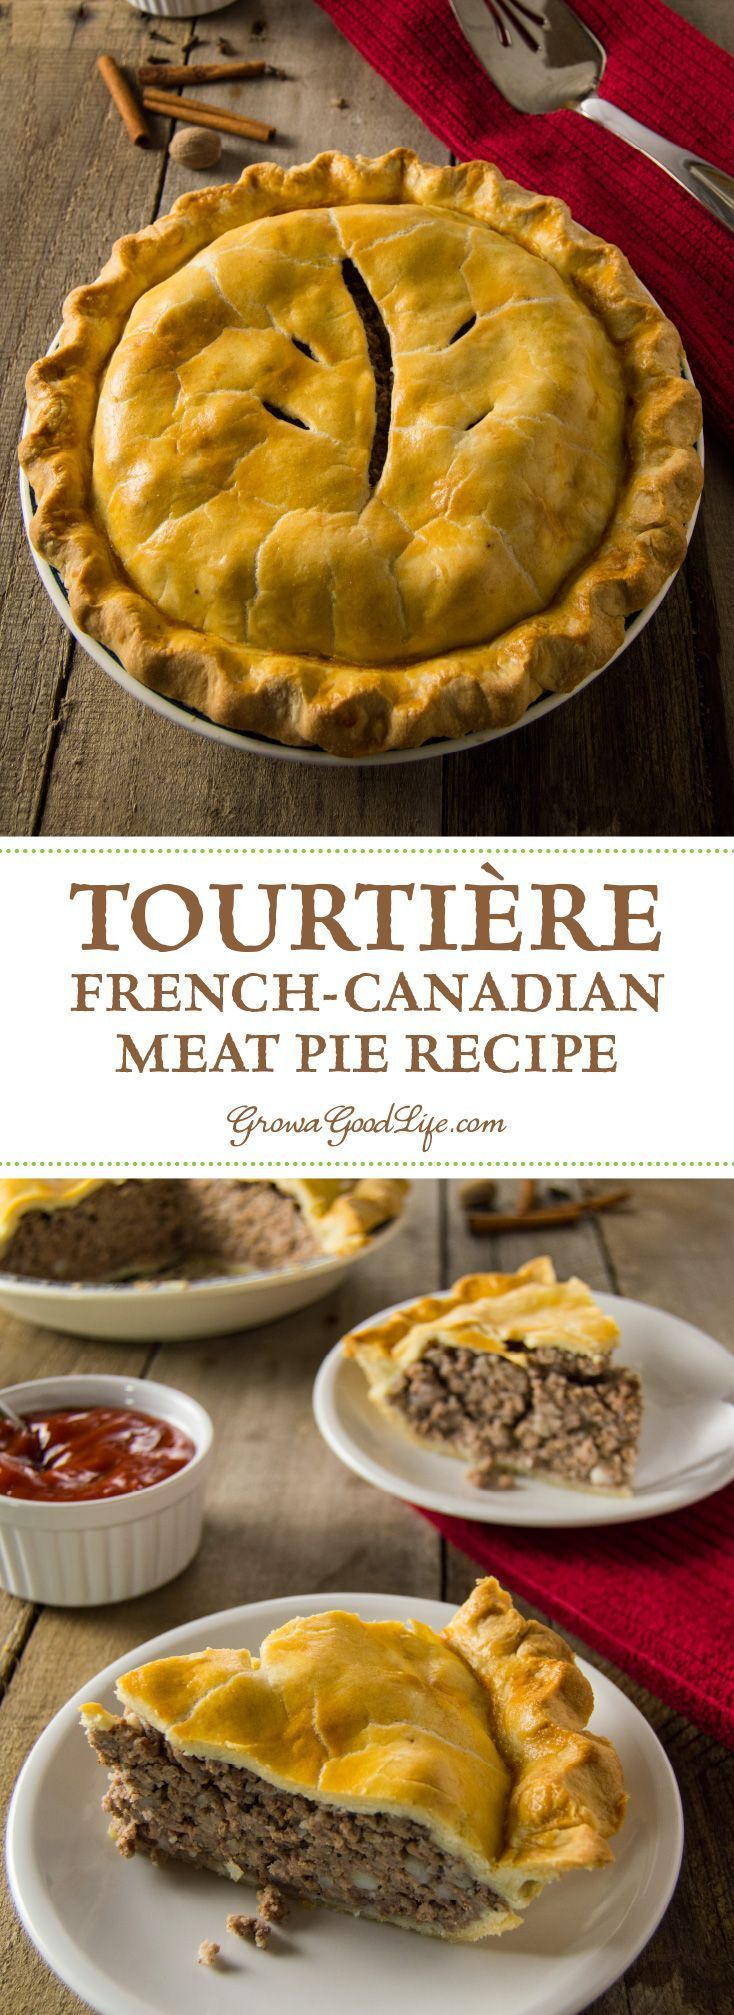 Tourtière, also known as pork pie or meat pie, is a traditional French-Canadian pie served by generations of French-Canadian families throughout Canada and New England. It is made from a combination of ground meat, onions, savory spices, and baked in a traditional piecrust.